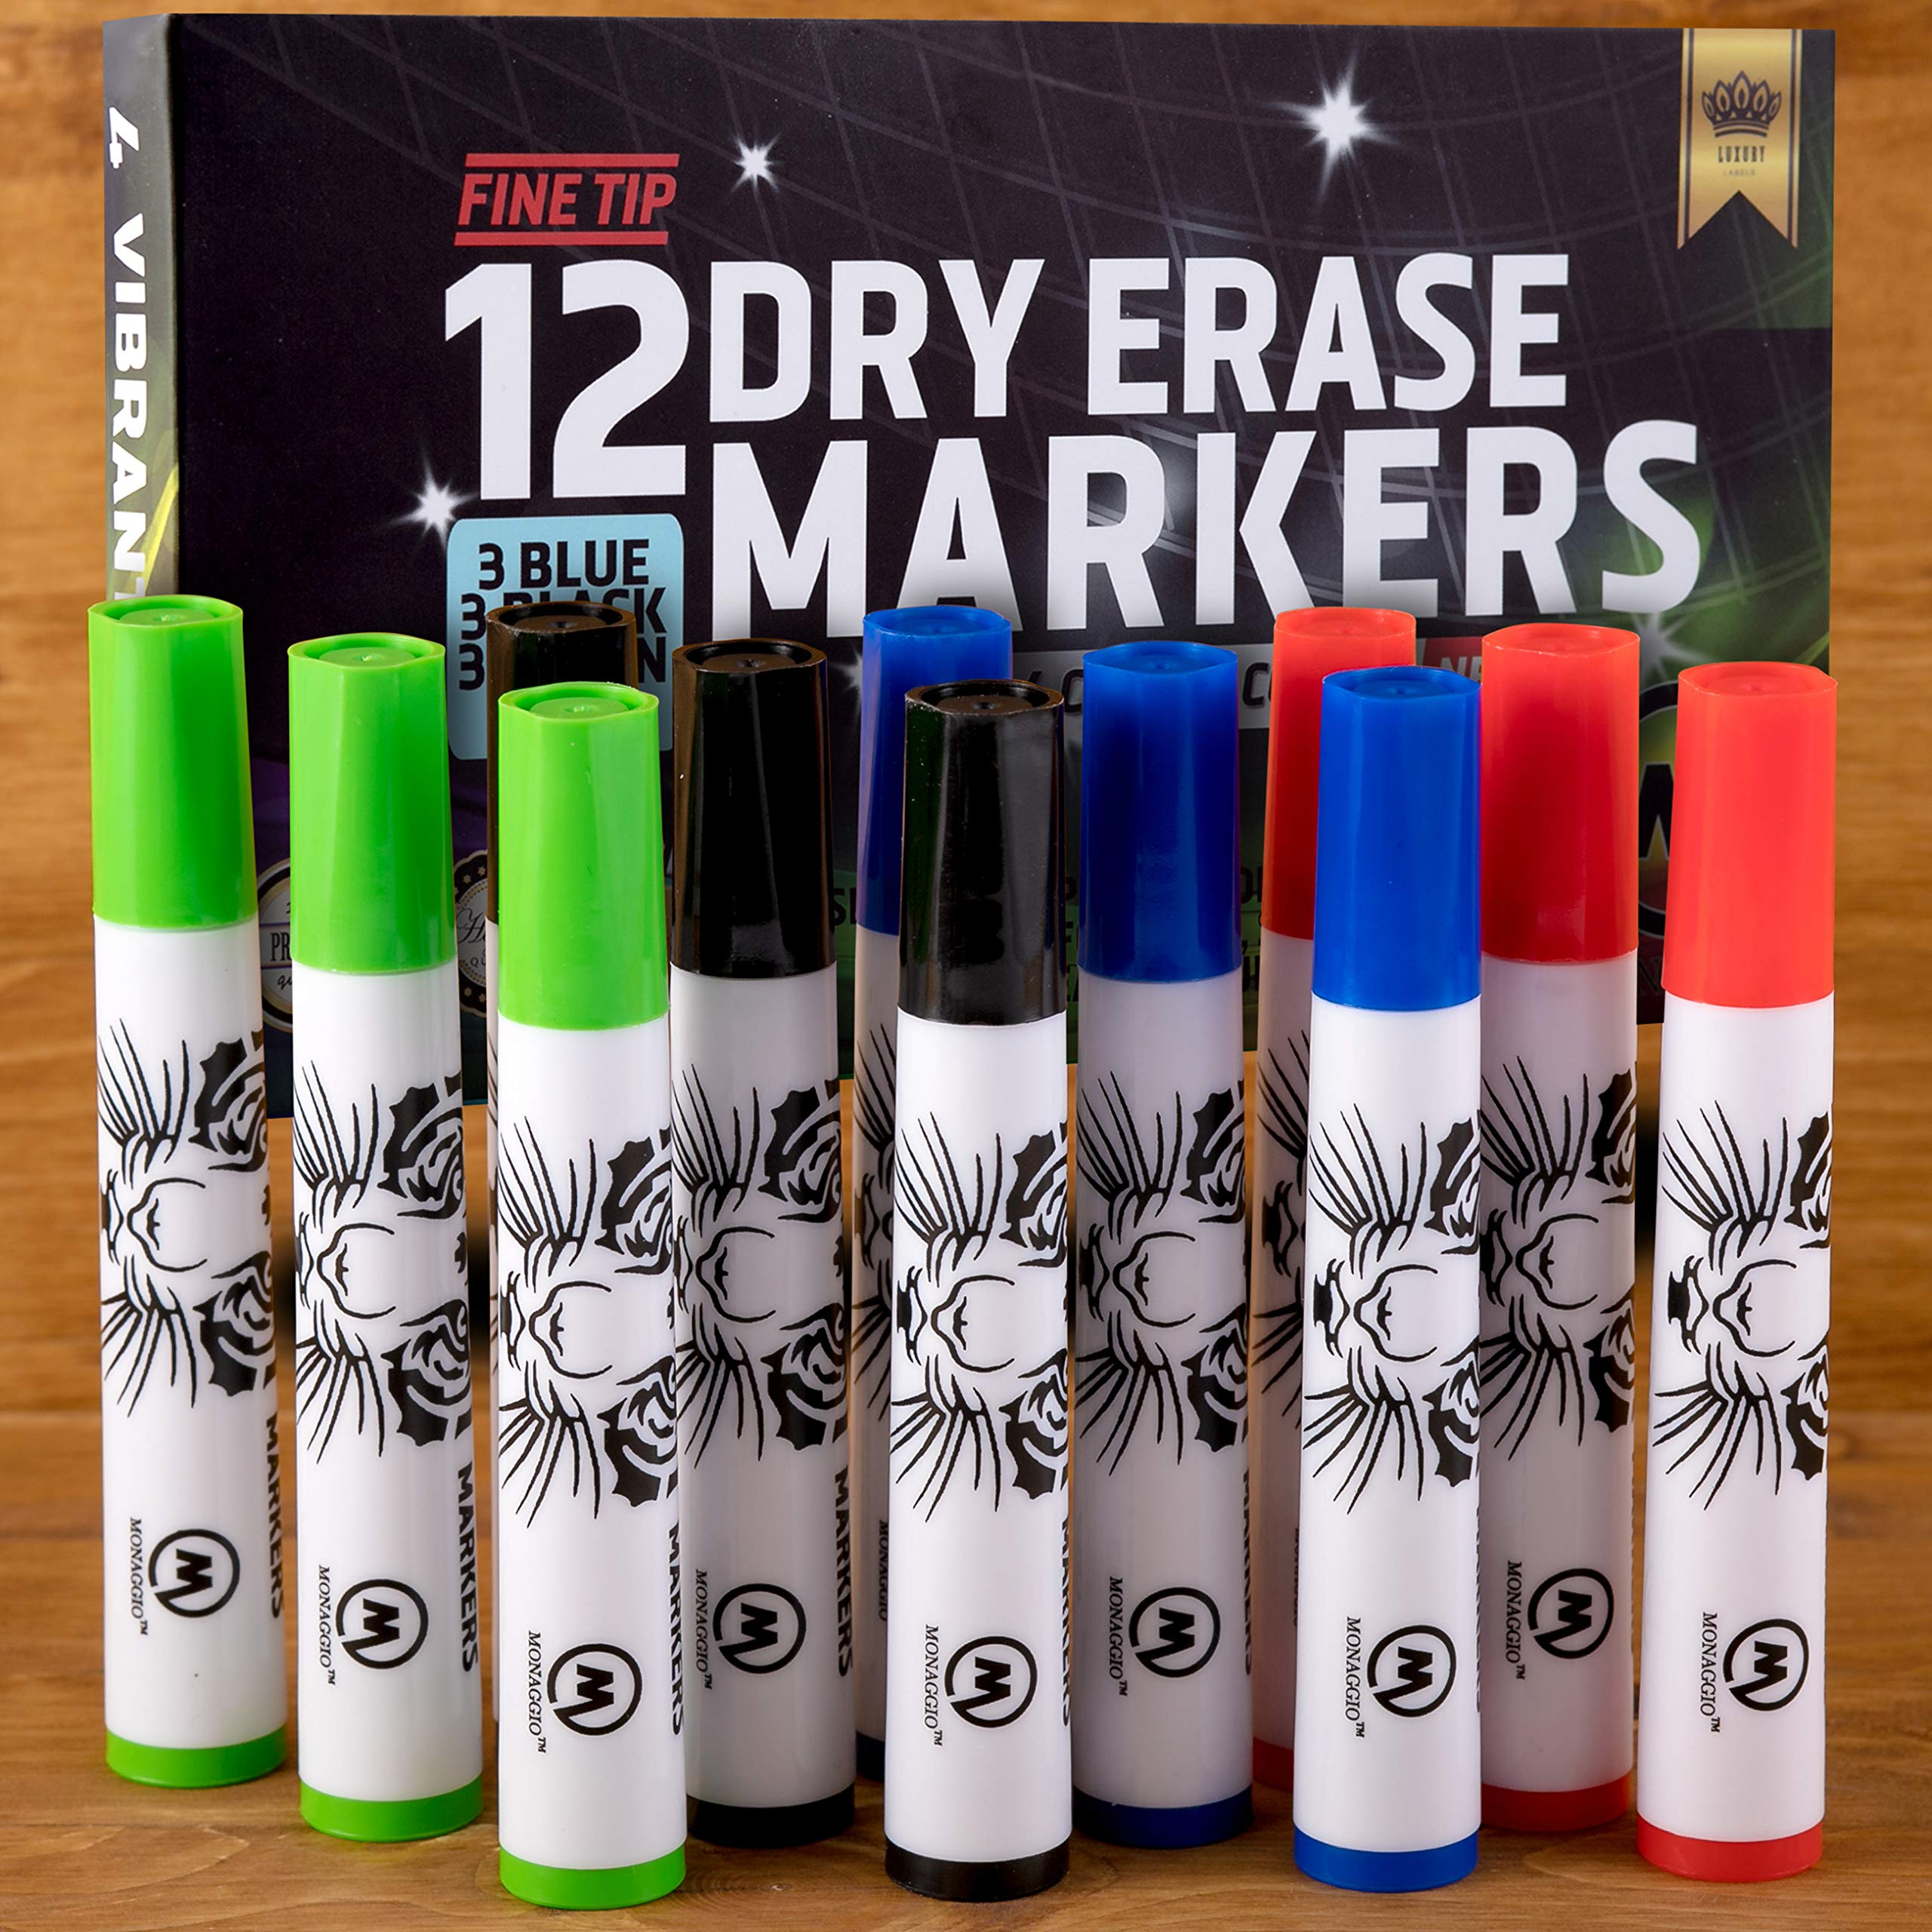 Dry Erase Markers Whiteboard Marker Pens Set Fine Point for Kids School Erasable Pen Tip White Board Eraser Calendar Erasers Children and Office Supplies Black Red Blue Neon Green Purple Colors